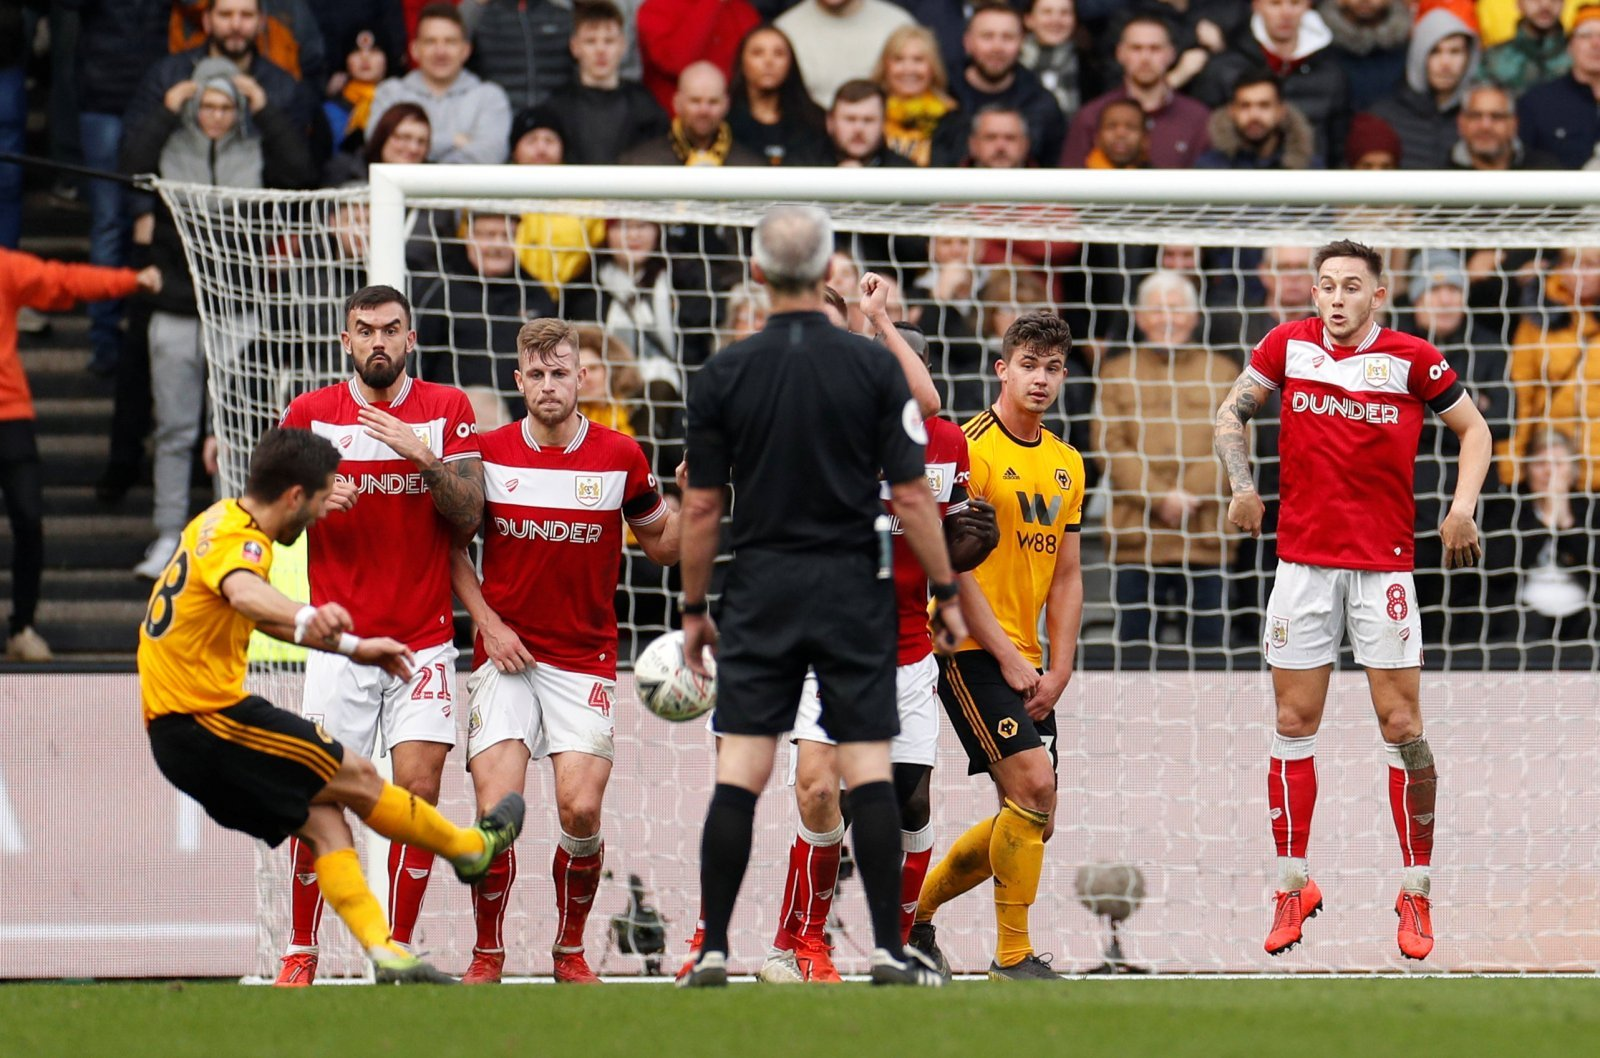 Unsung hero: Joao Moutinho to thank as Wolves knock Bristol City out